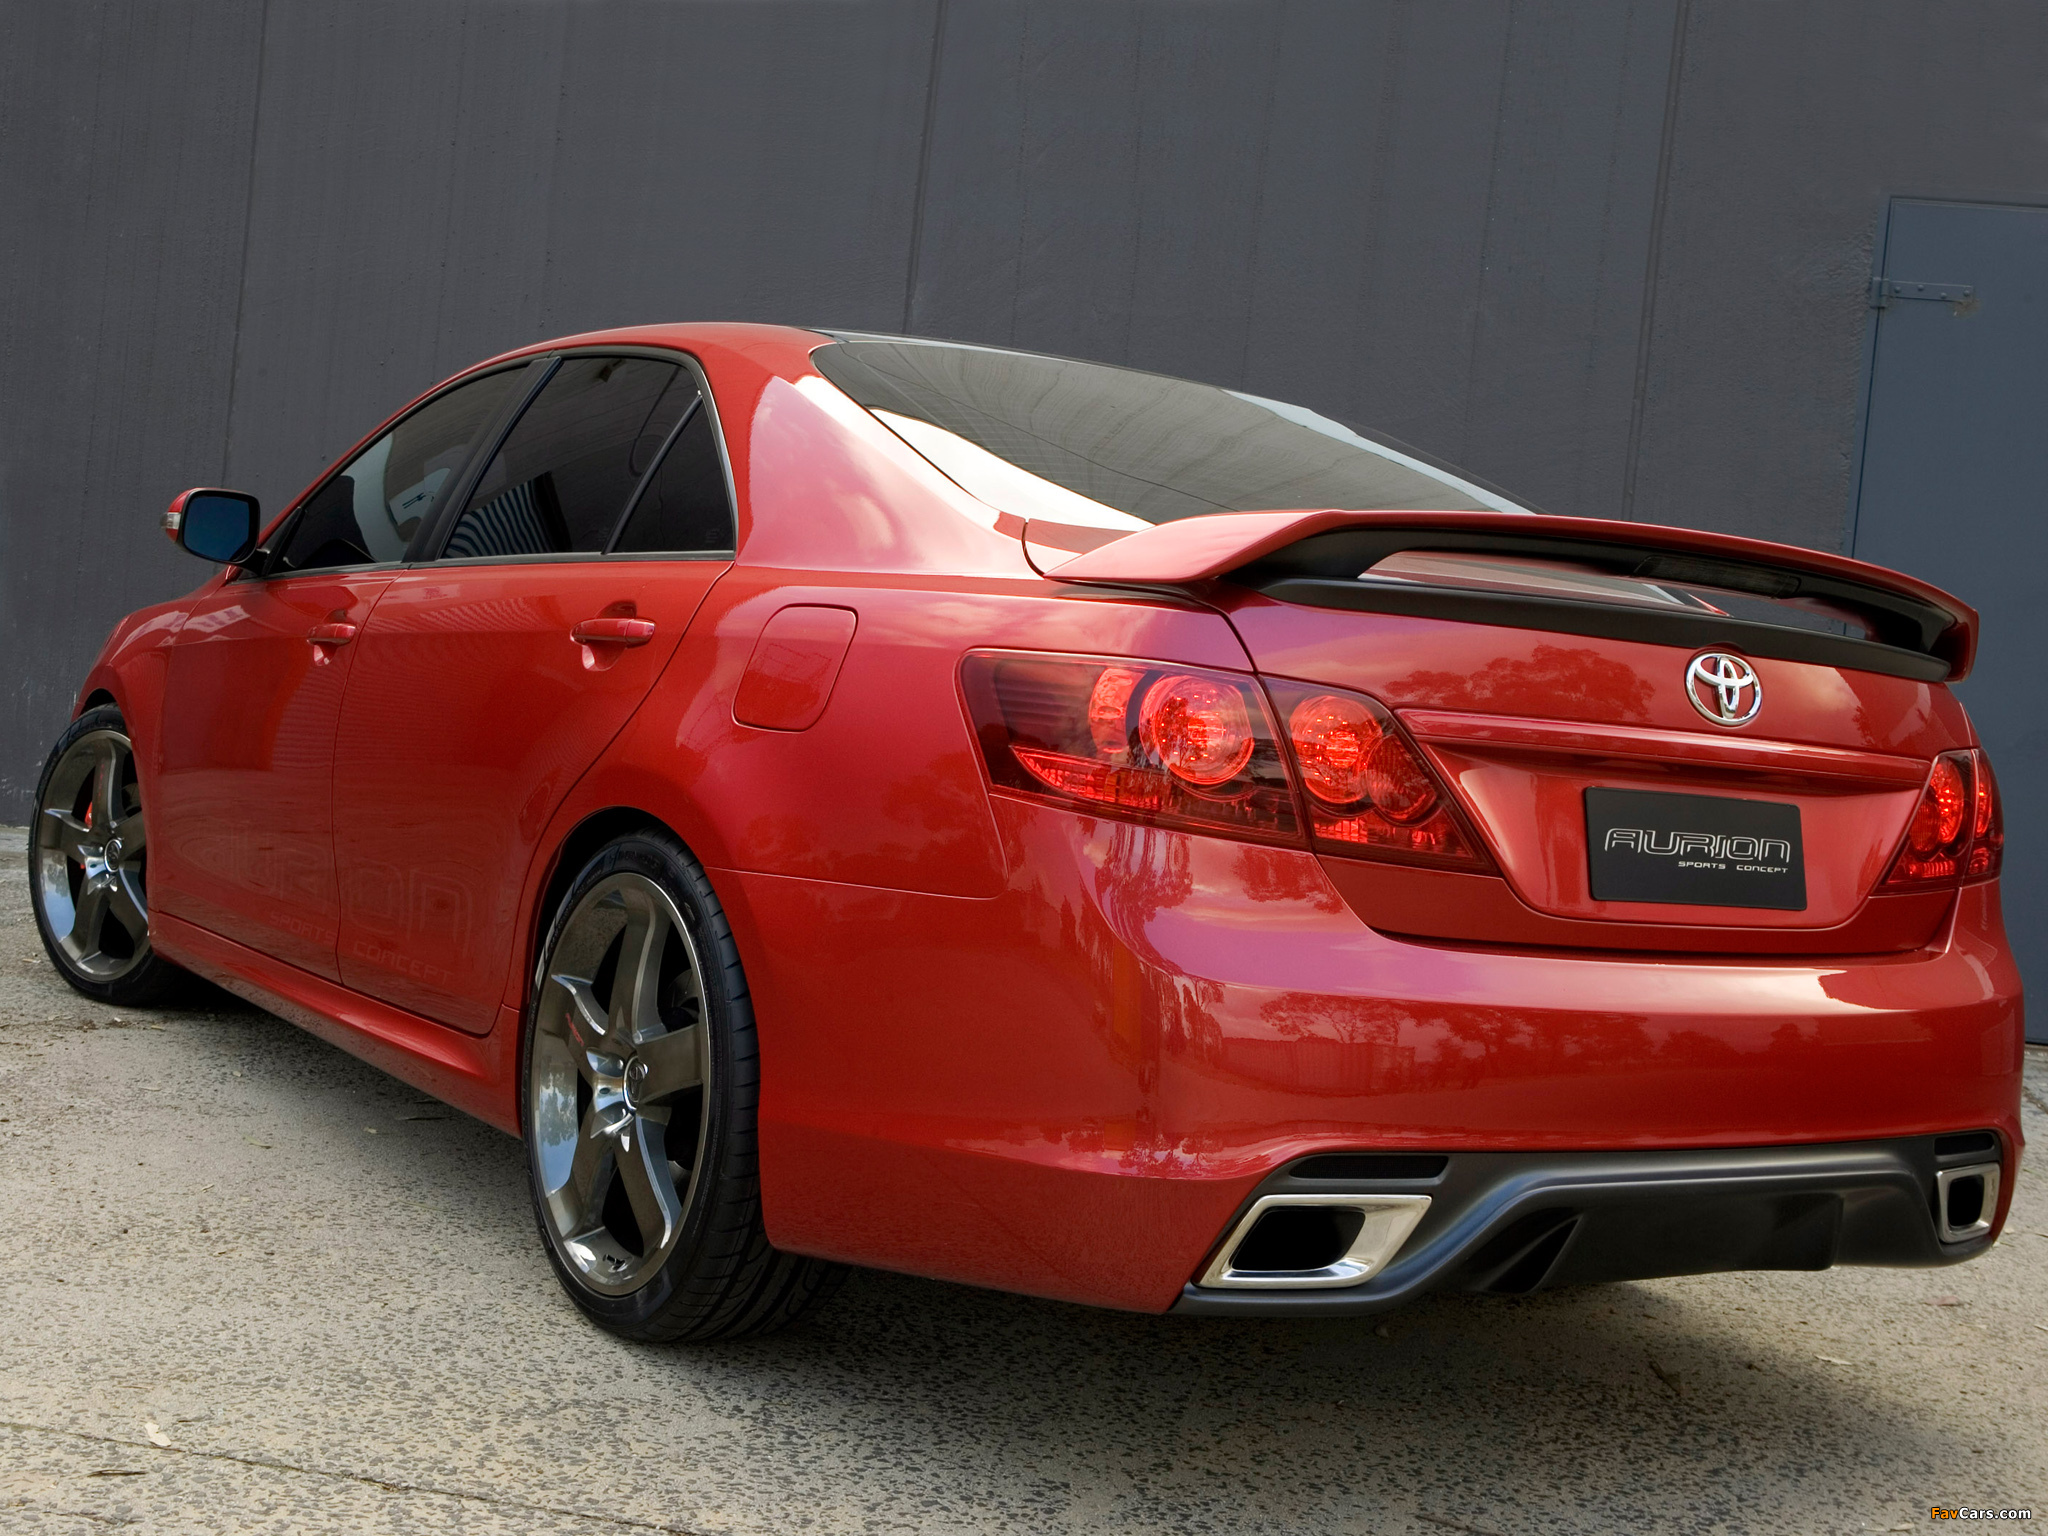 Toyota Camry Features Photos of TRD Toyota Aurion 2007 (2048x1536)